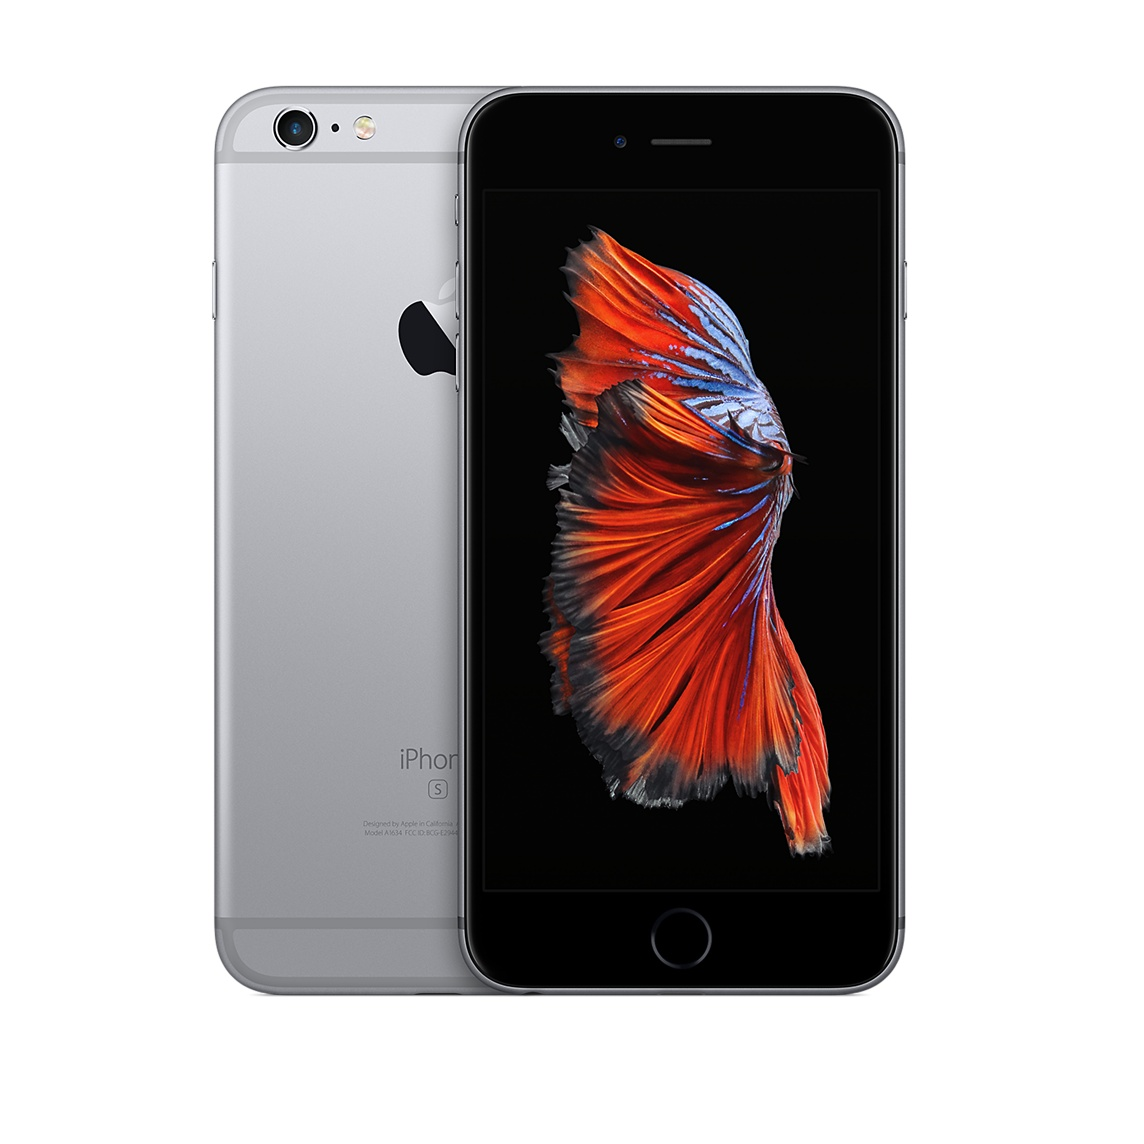 Refurb iphone6s plus spacegray